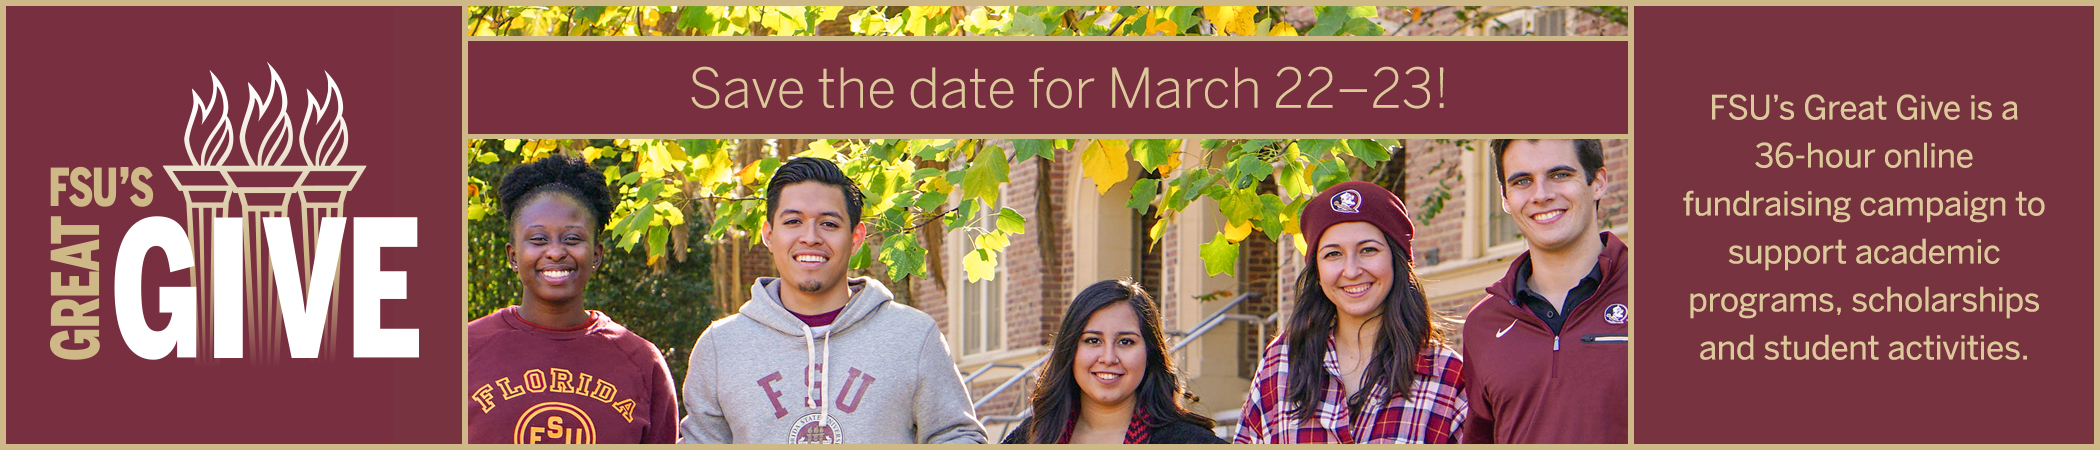 FSU's Great Give is a 36-hour online fundraising campaign — Save the Date for March 22-23